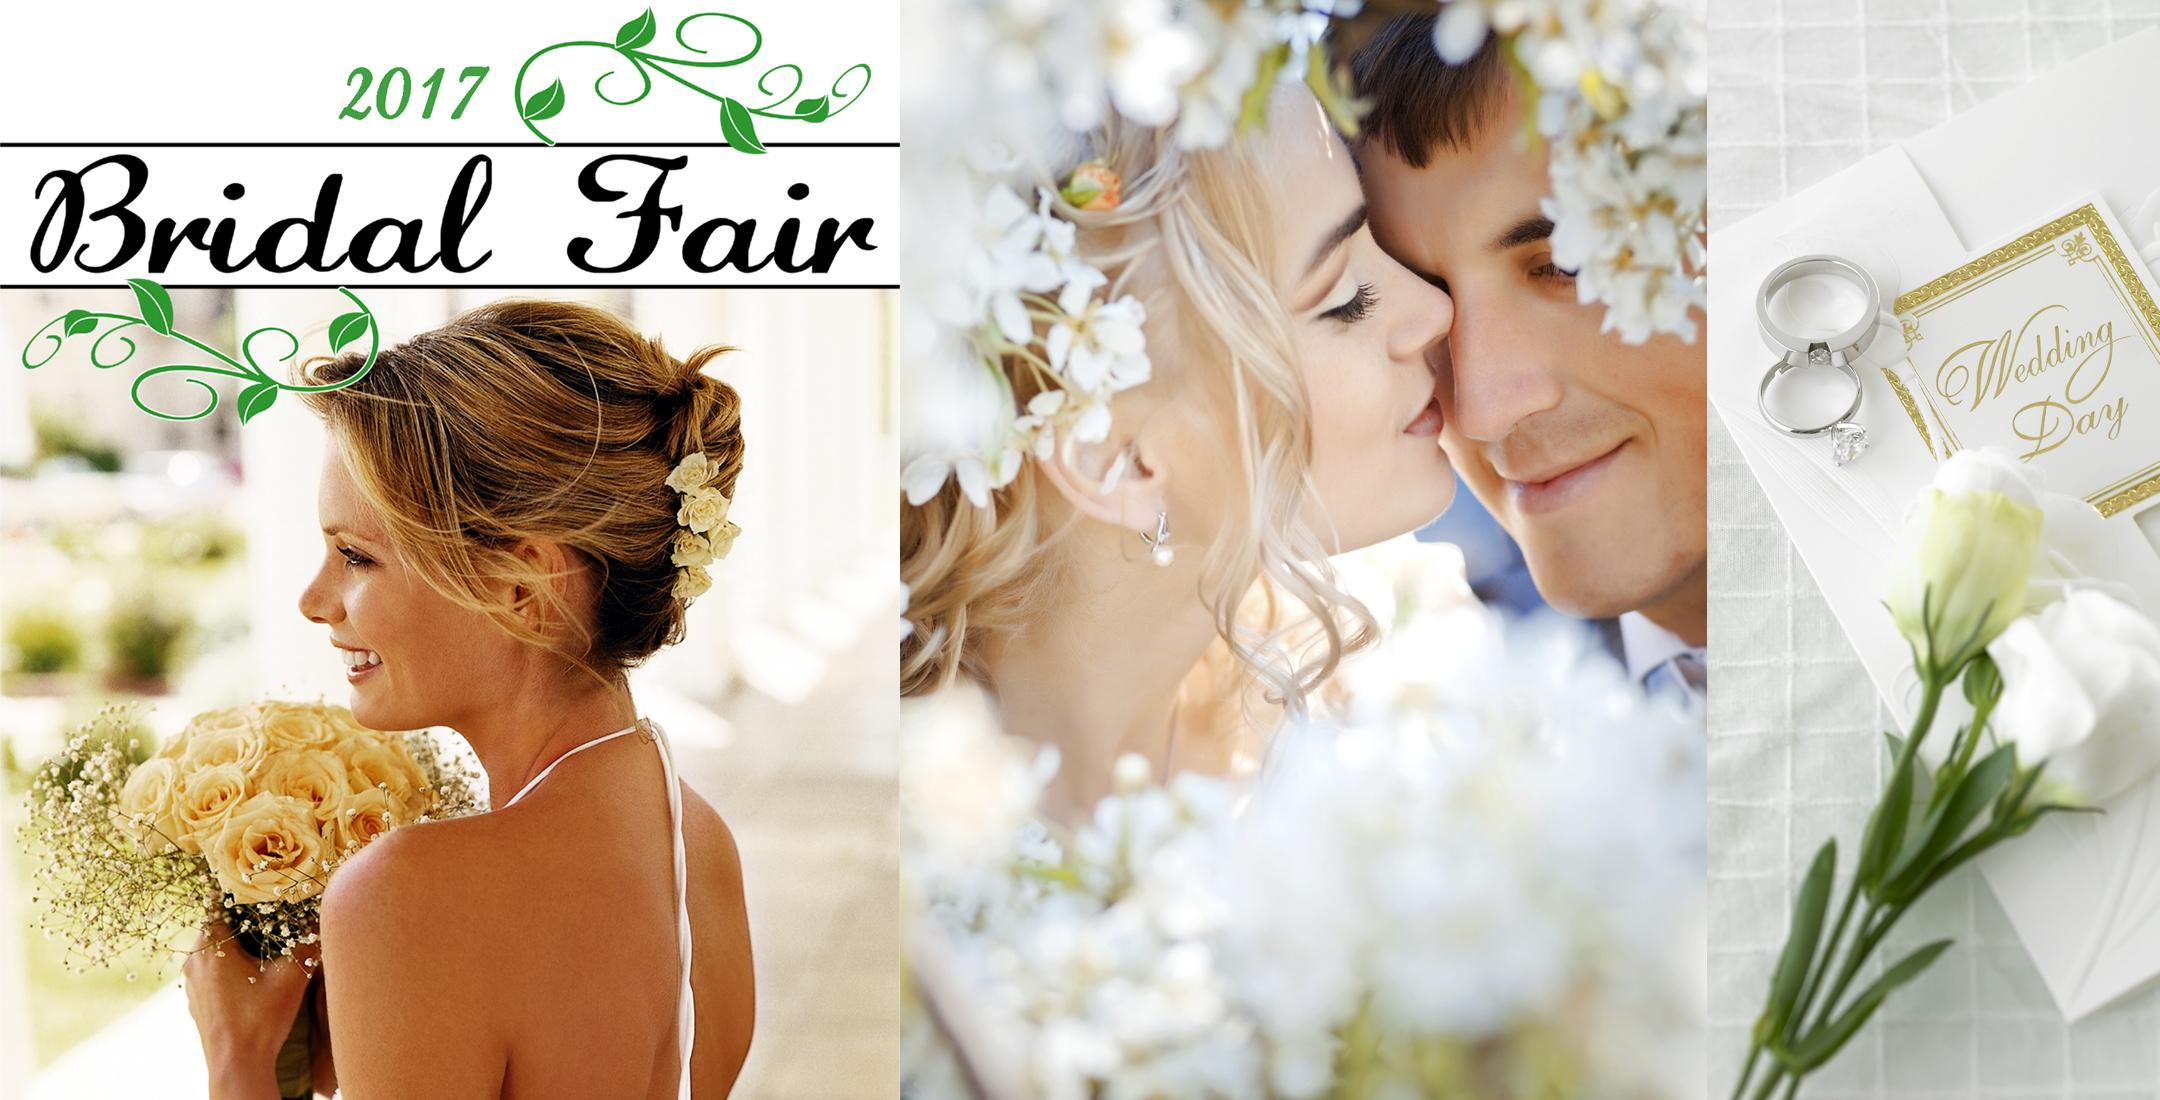 bridal fair Beaumont TX, Bridal Extravaganza Beaumont, bridal fair Port Arthur, bridal fair Mid County